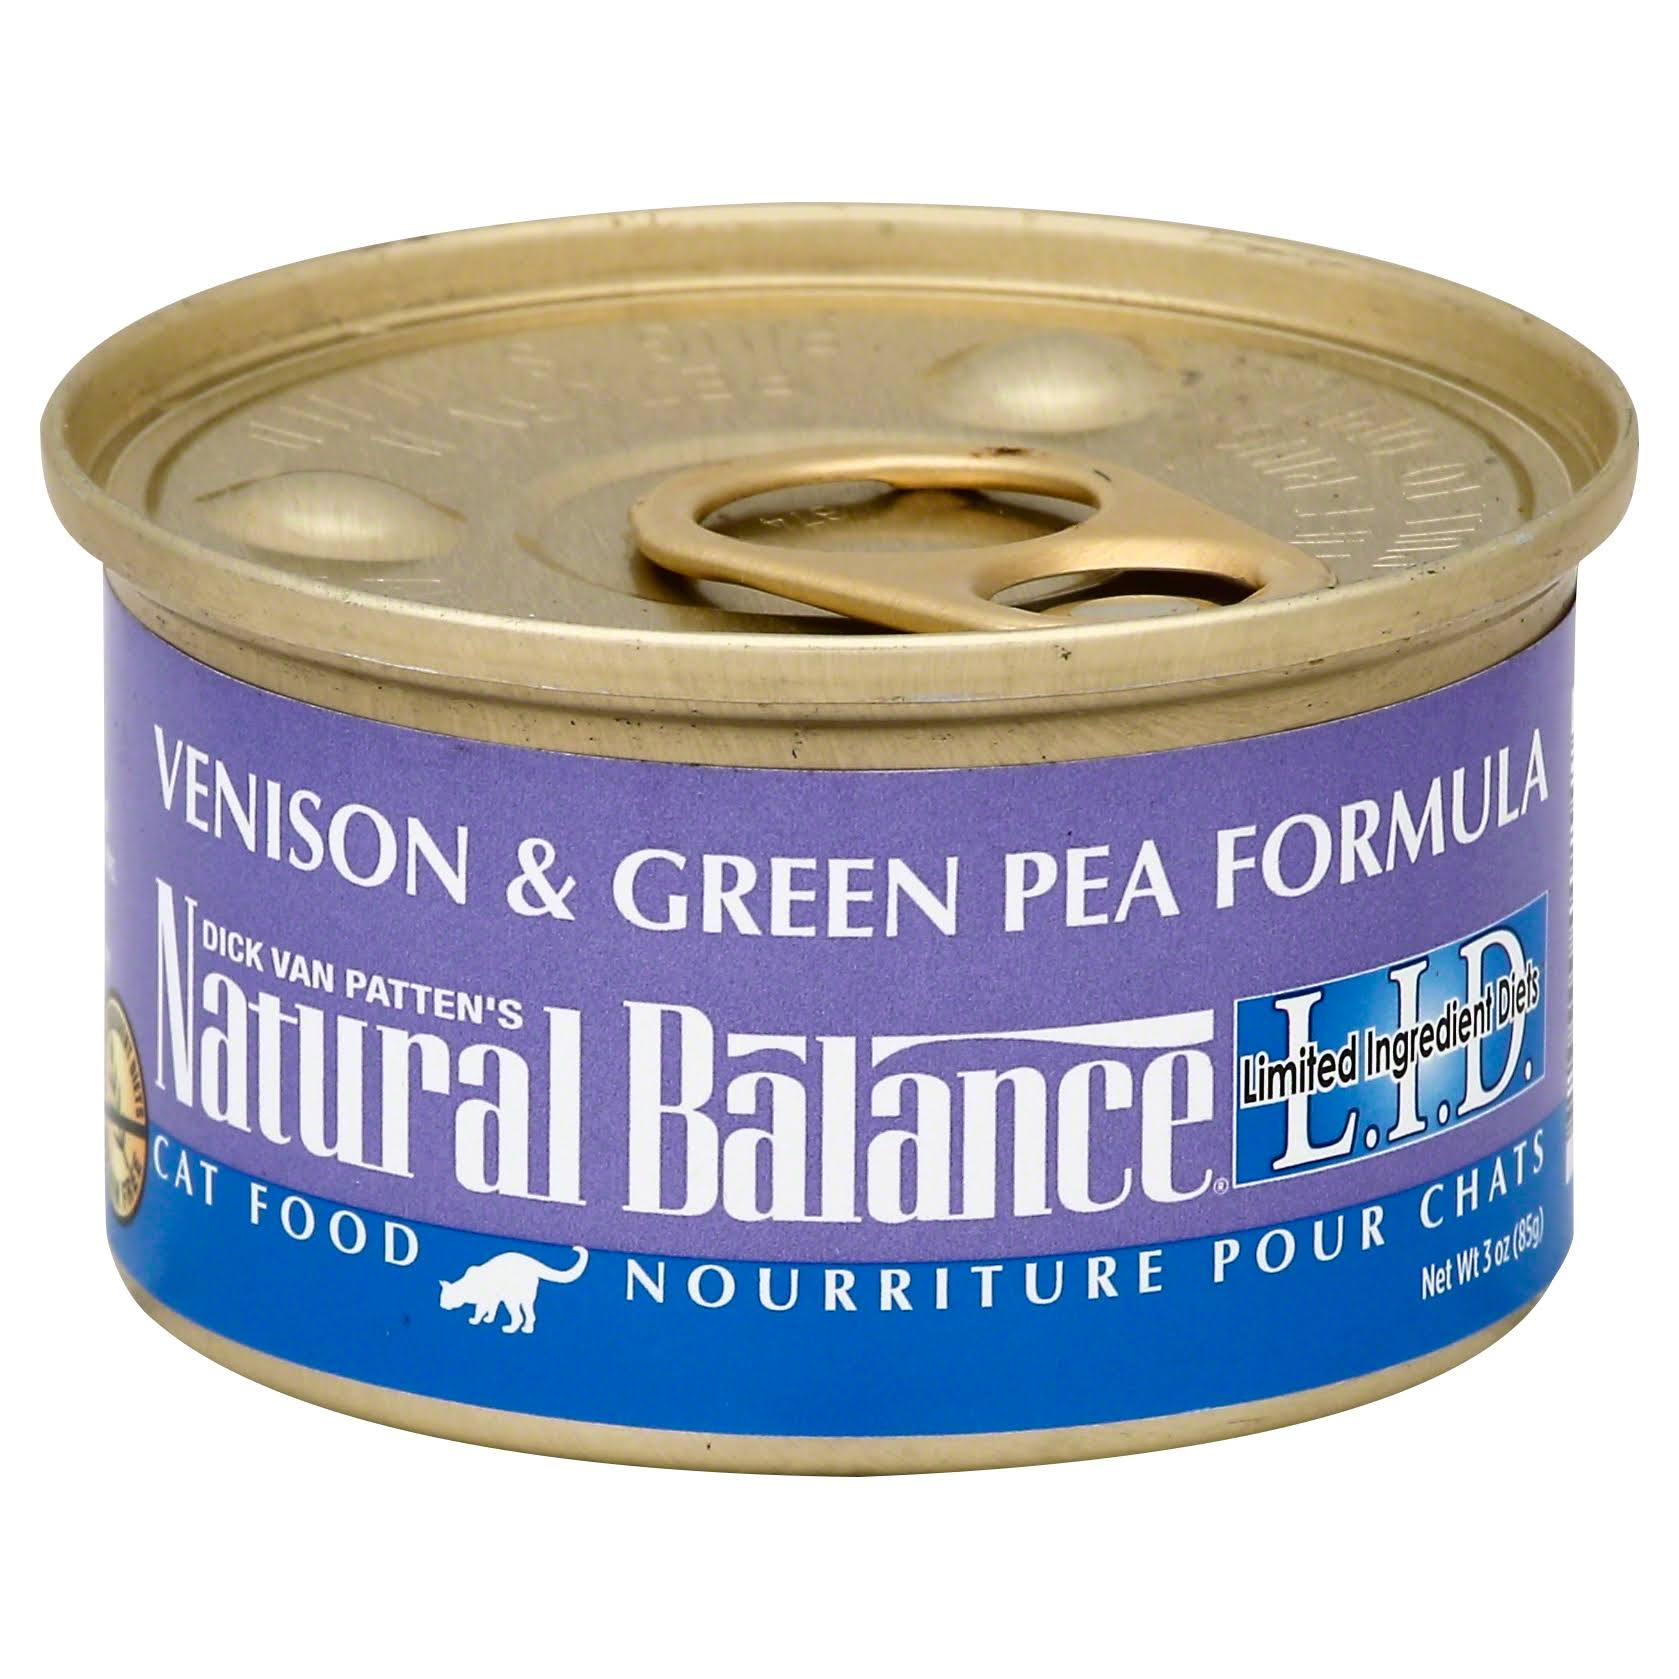 Natural Balance Cat Food - Venison & Green Pea Formula